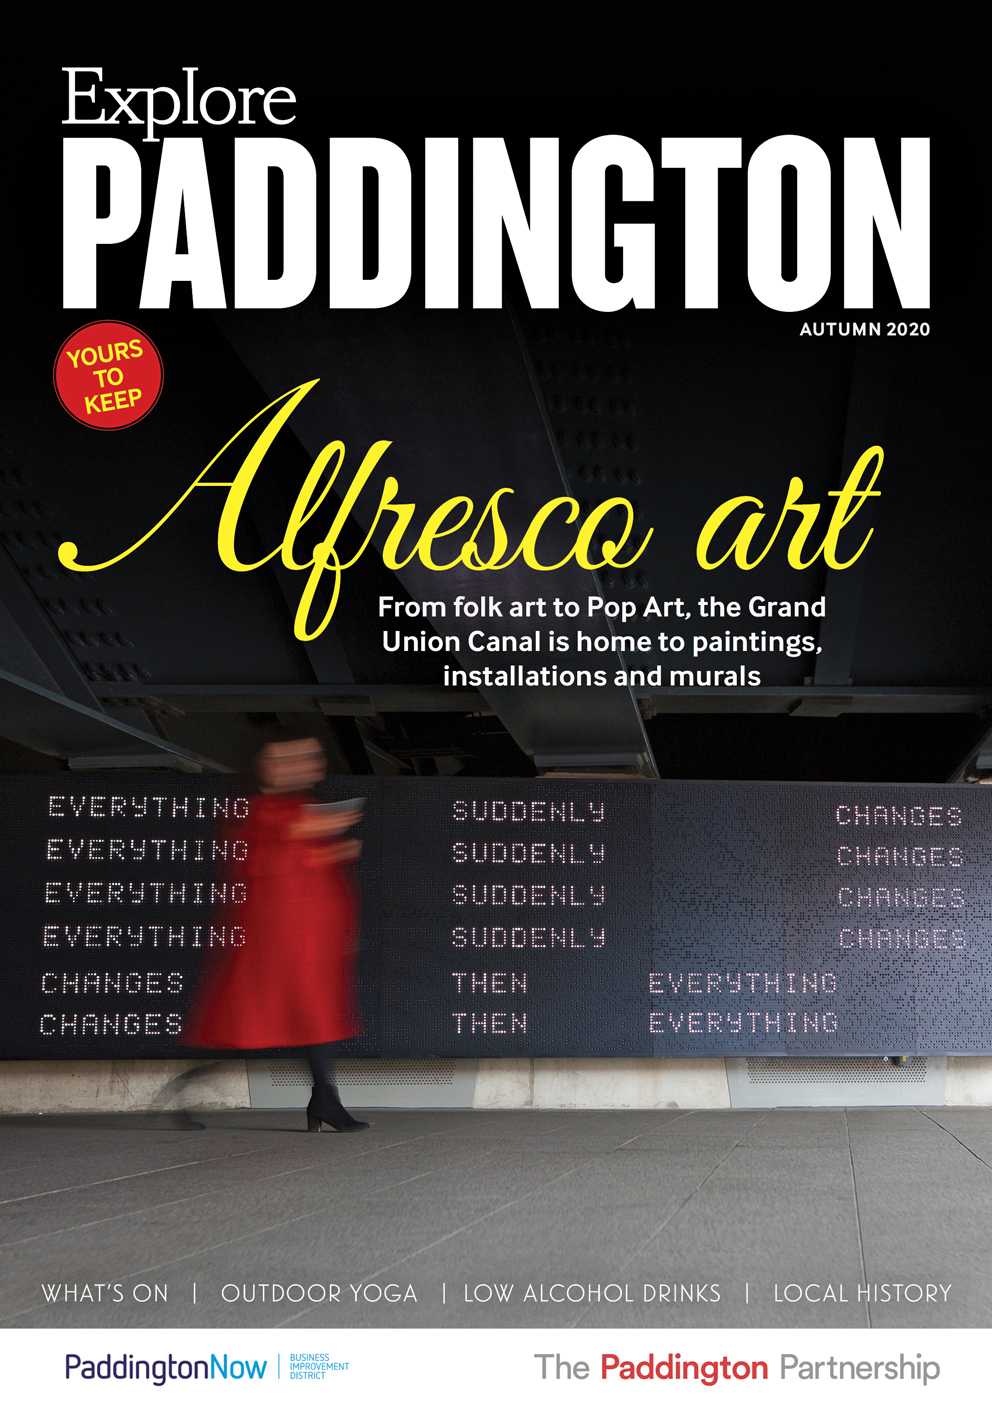 Explore Paddington, 